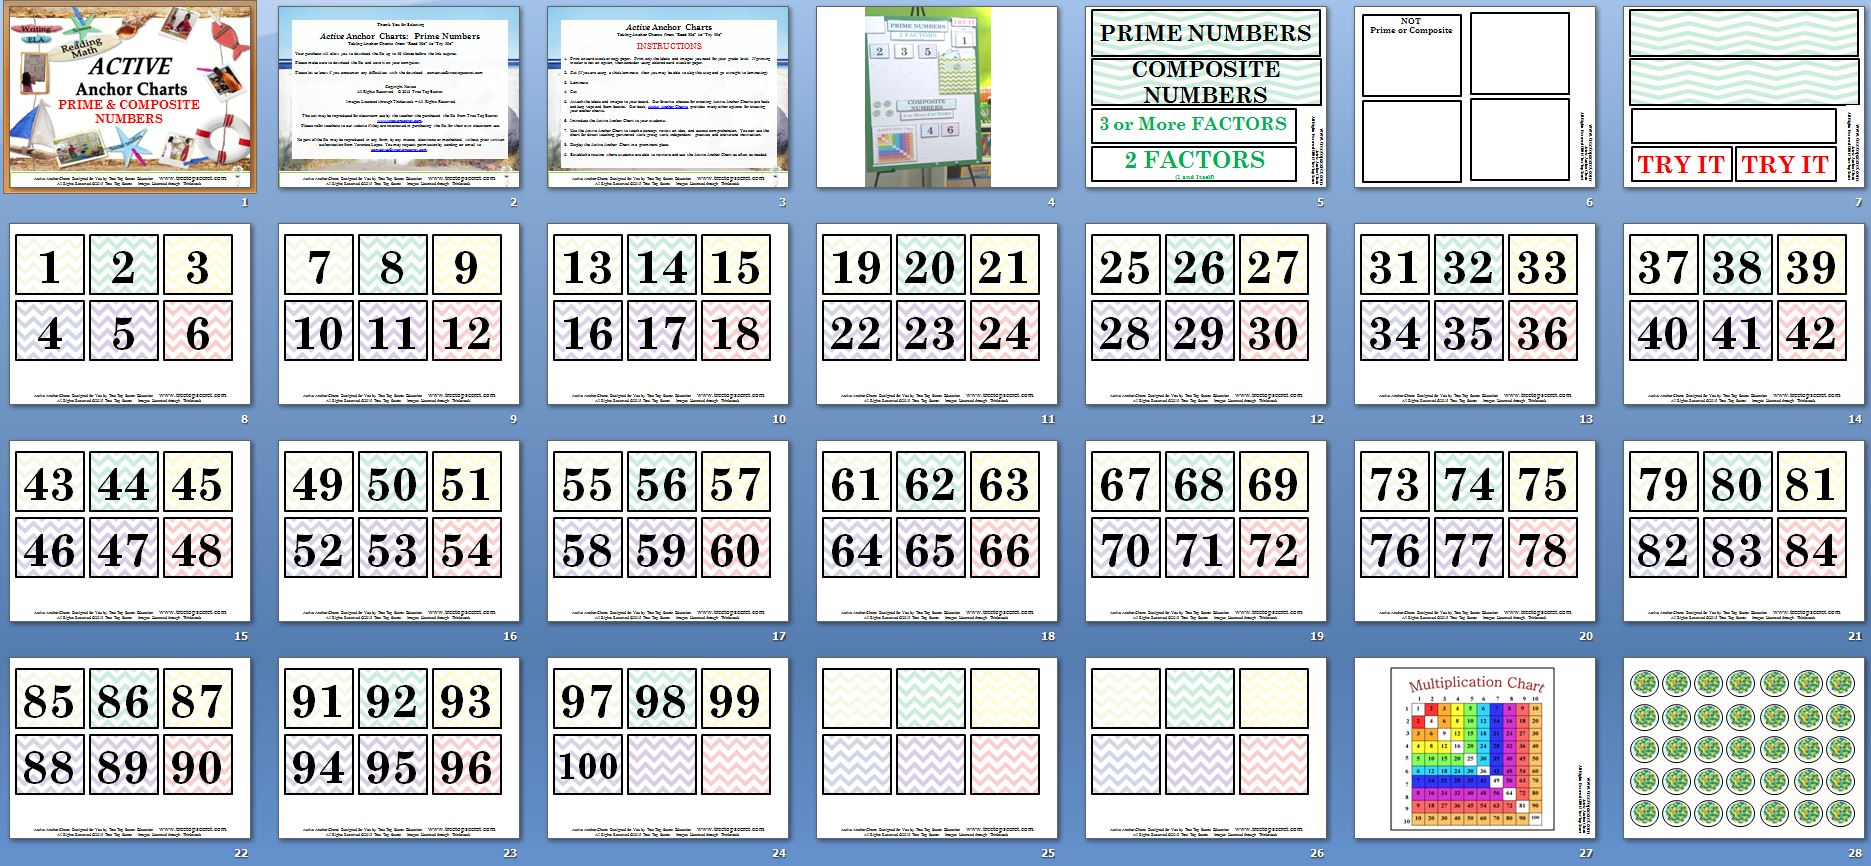 Active Anchor Chart Prime Numbers Treetopsecret Education Composite